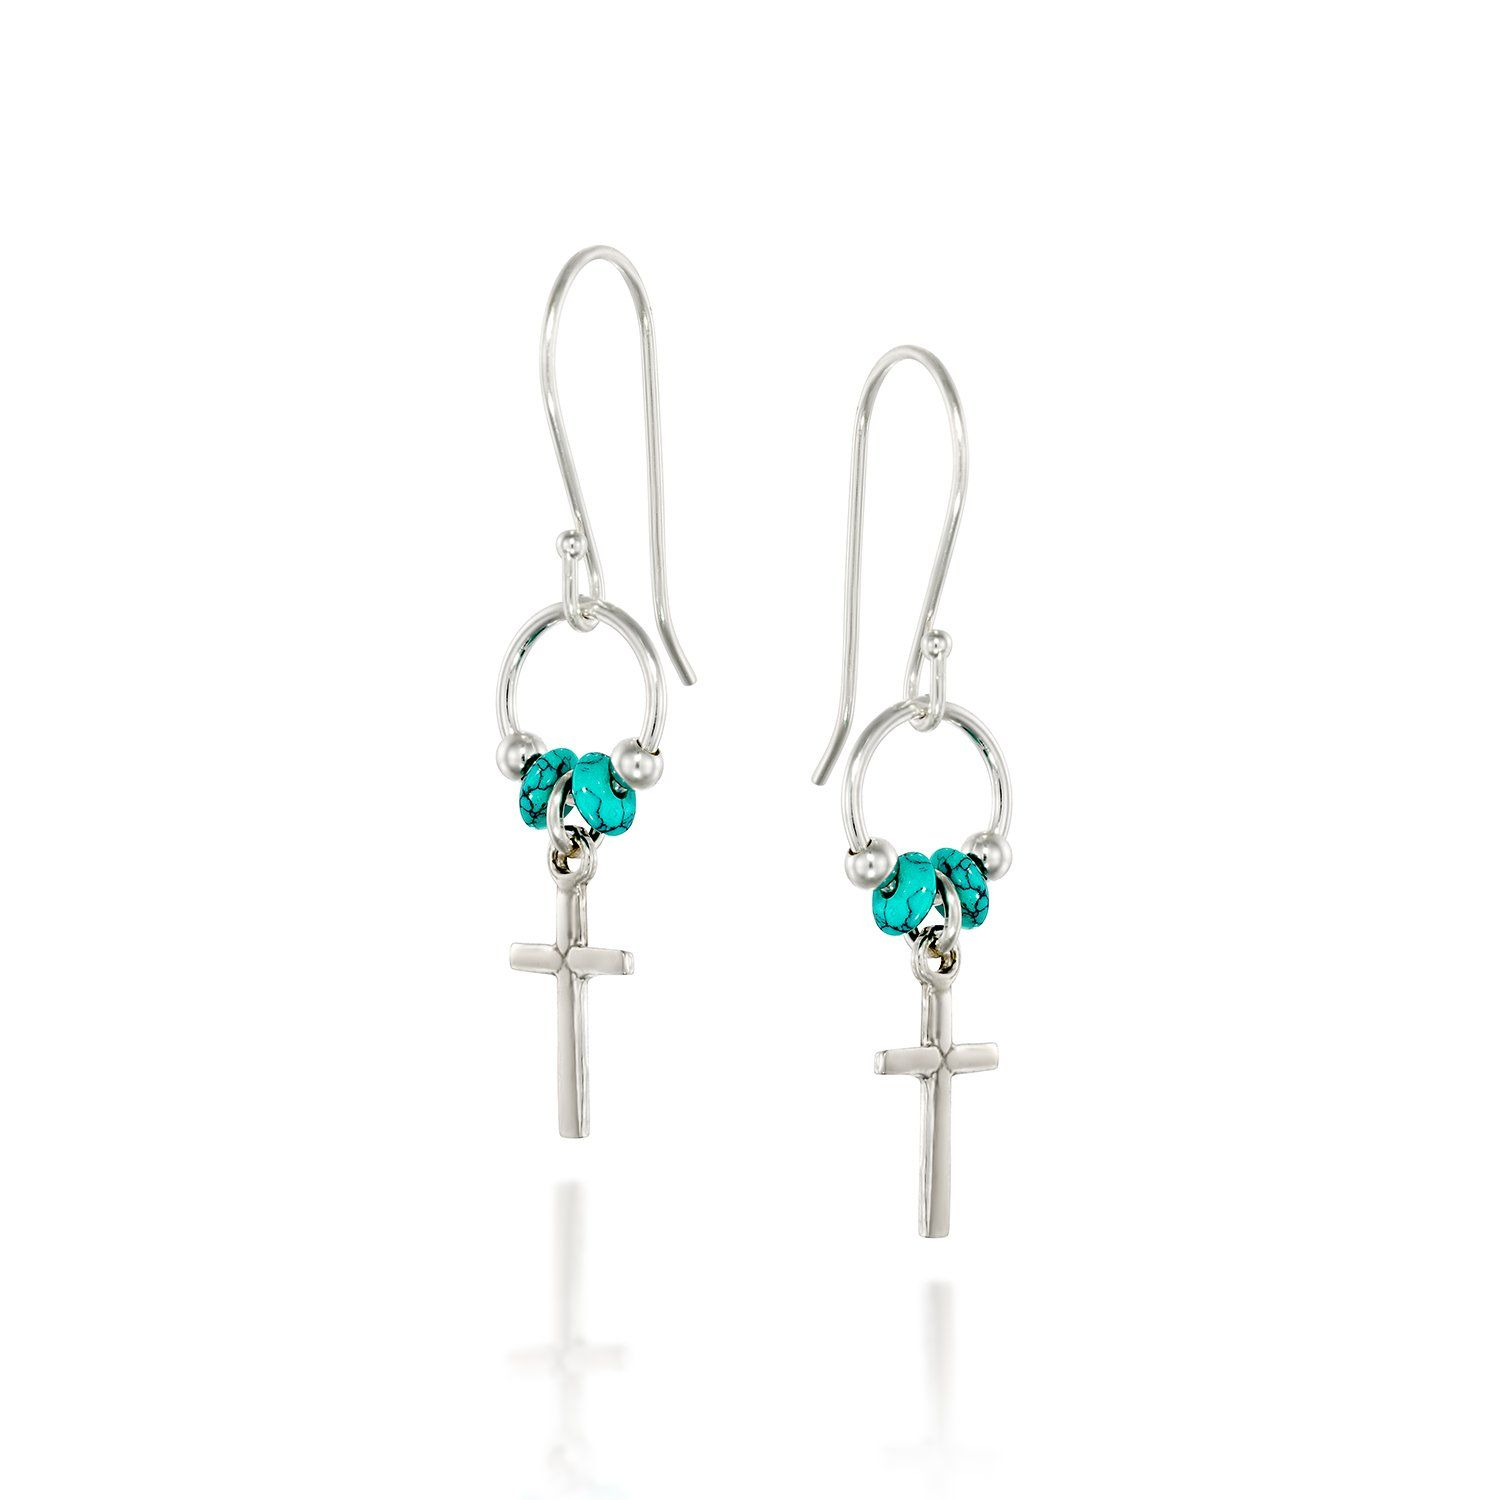 925 Sterling Silver Cross Earrings with Turquoise Beads Accents and ...